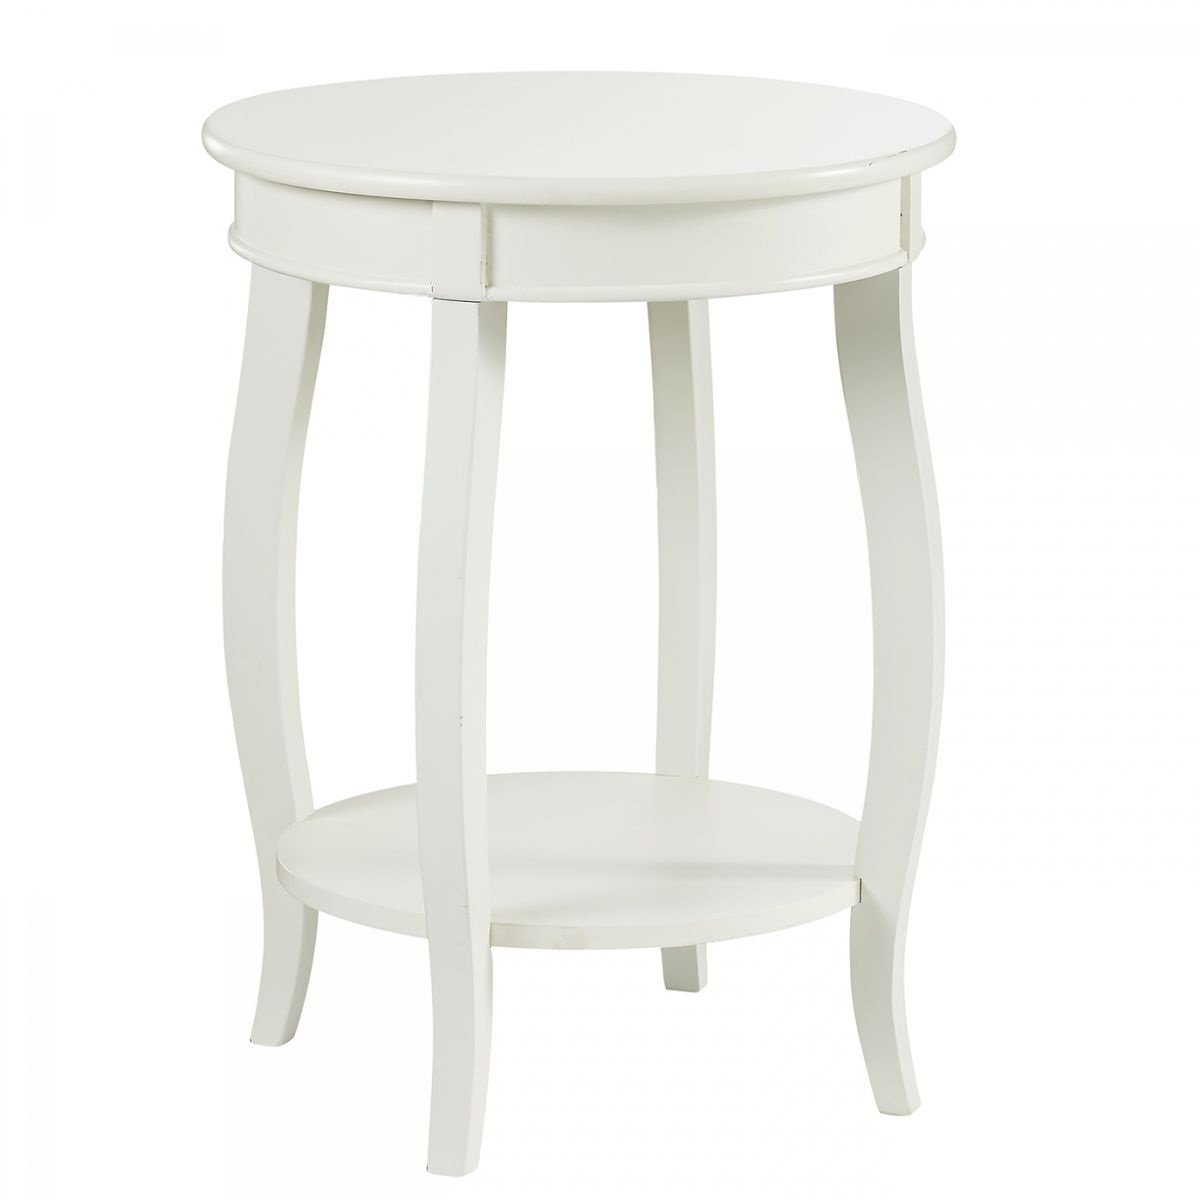 rainbow white round accent table badcock more with drawer ture nate berkus mirrored bedside ikea three legged small metal end target desk chests and trunks glass top outdoor